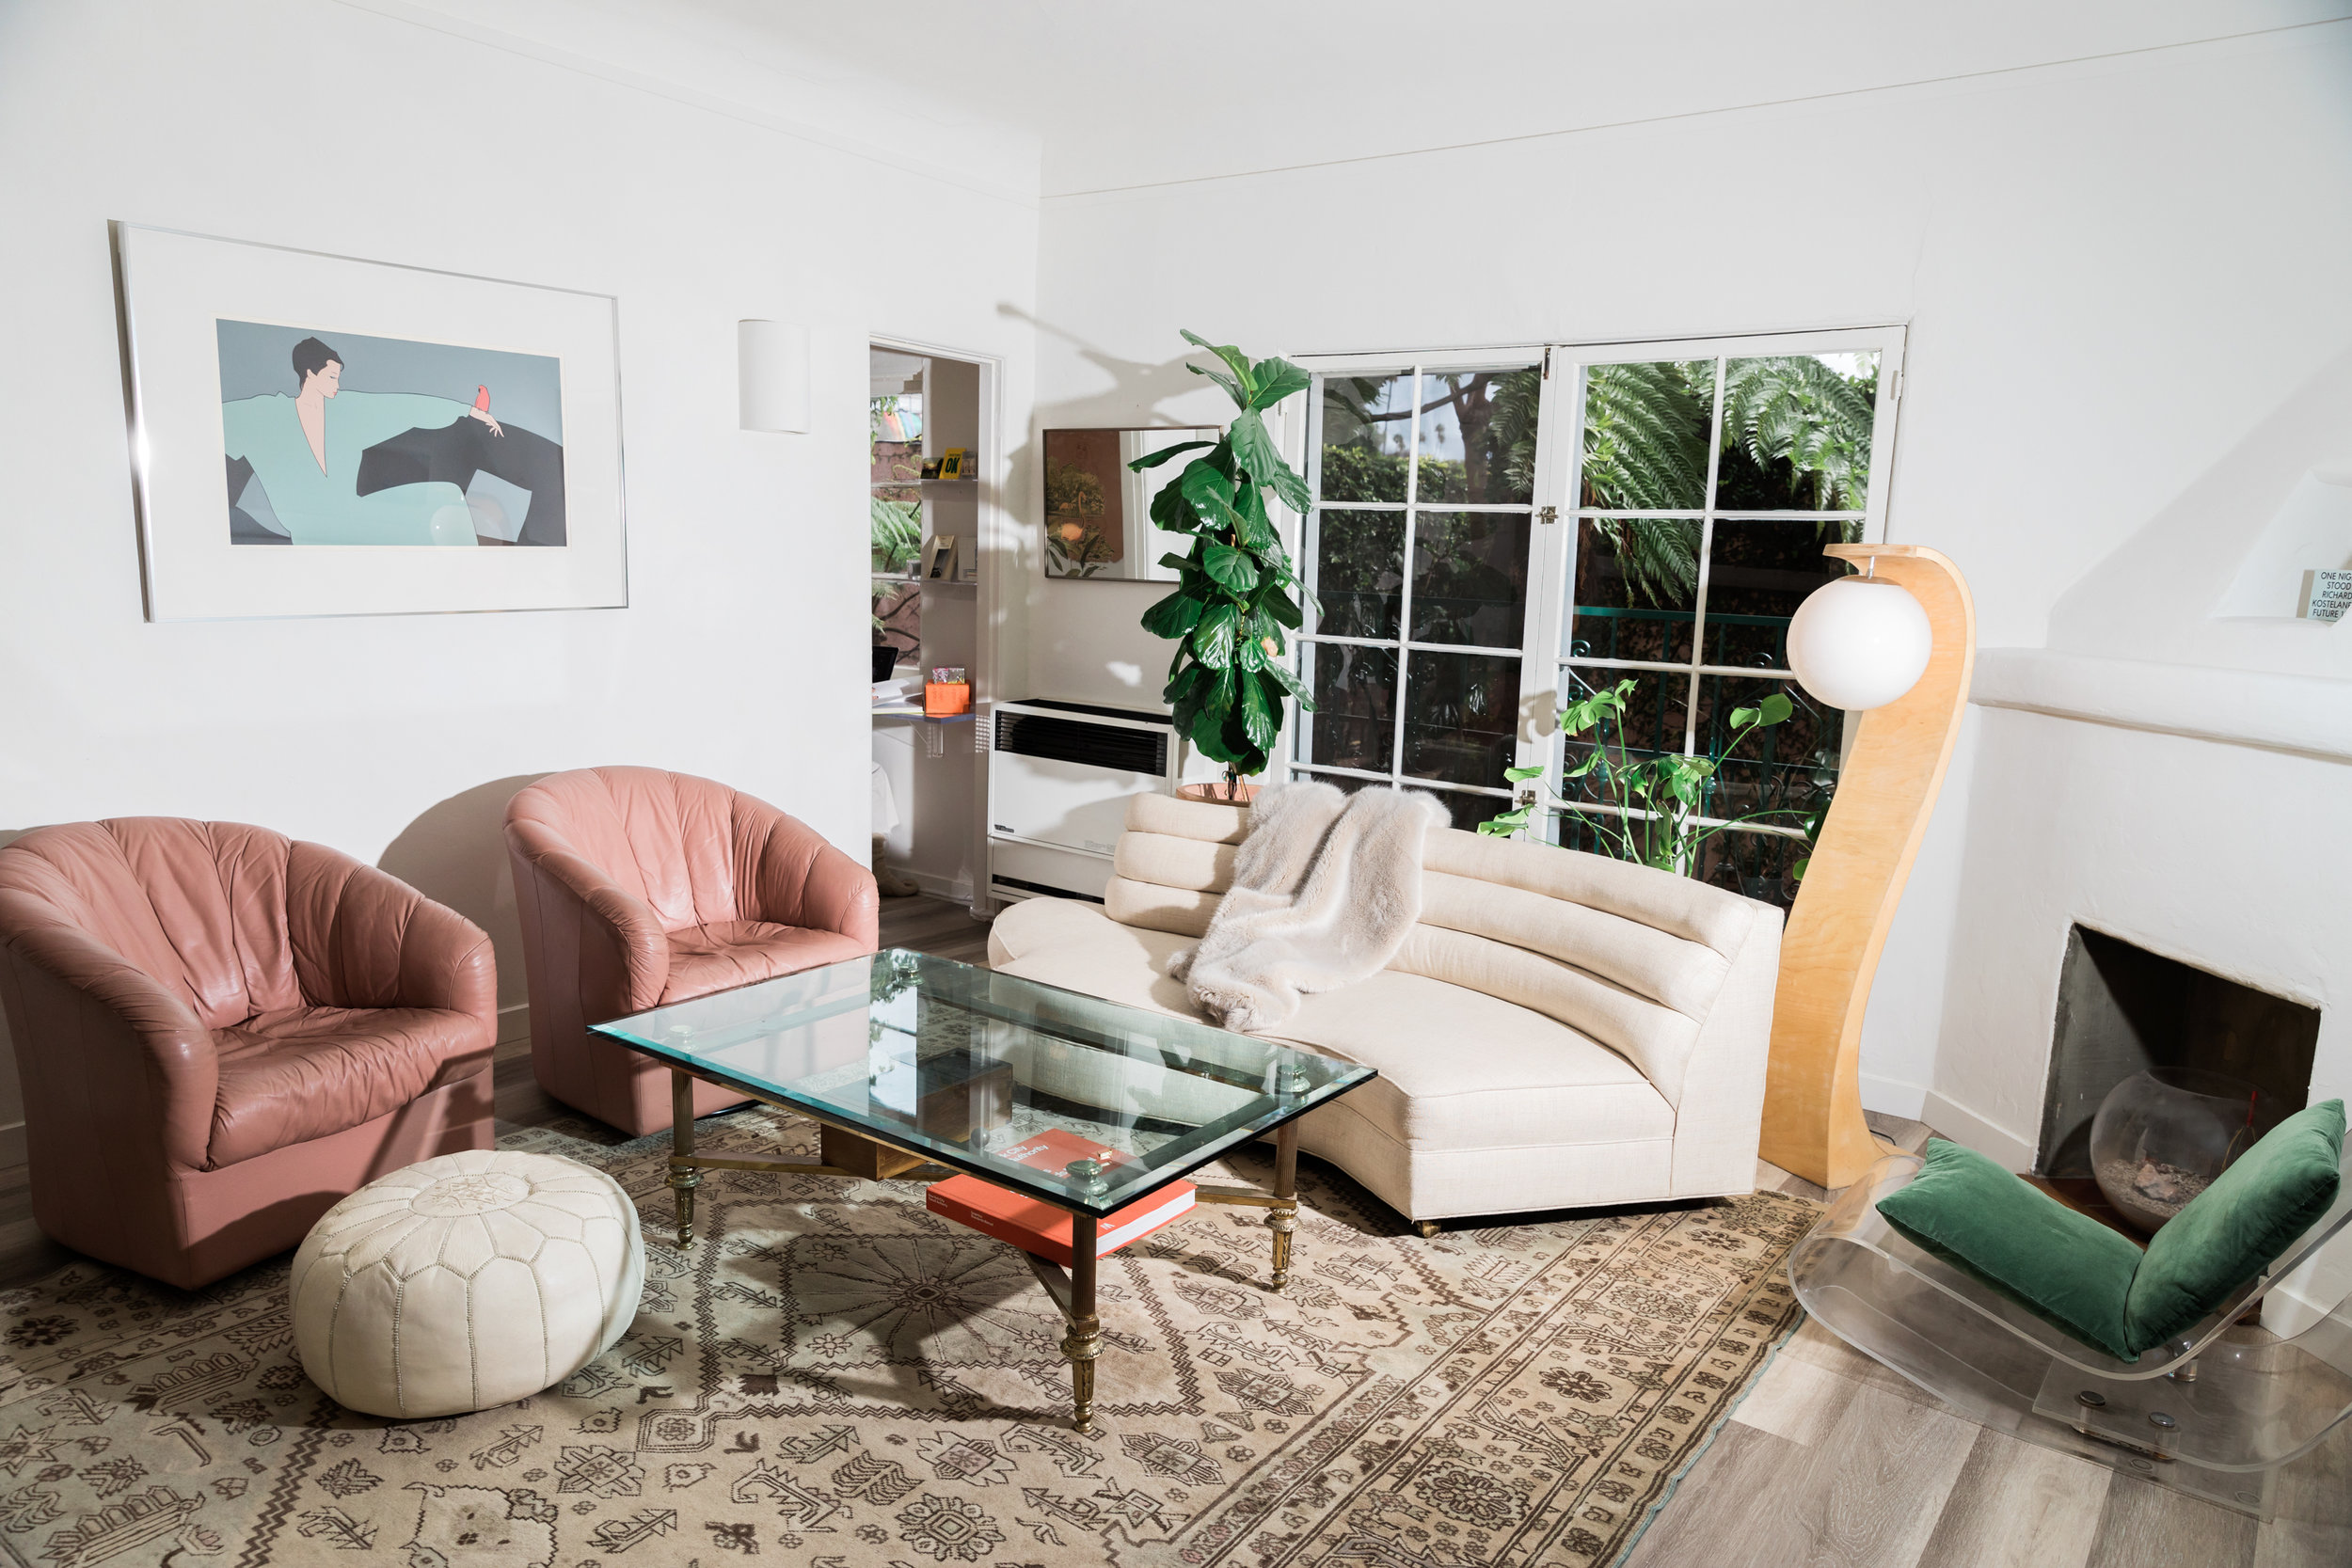 Mediterranean Deco - Silver Lake1931 Spanish Colonial Revival style apartment designed with the unabashed hedonism of 1970s Hollywood in mind.